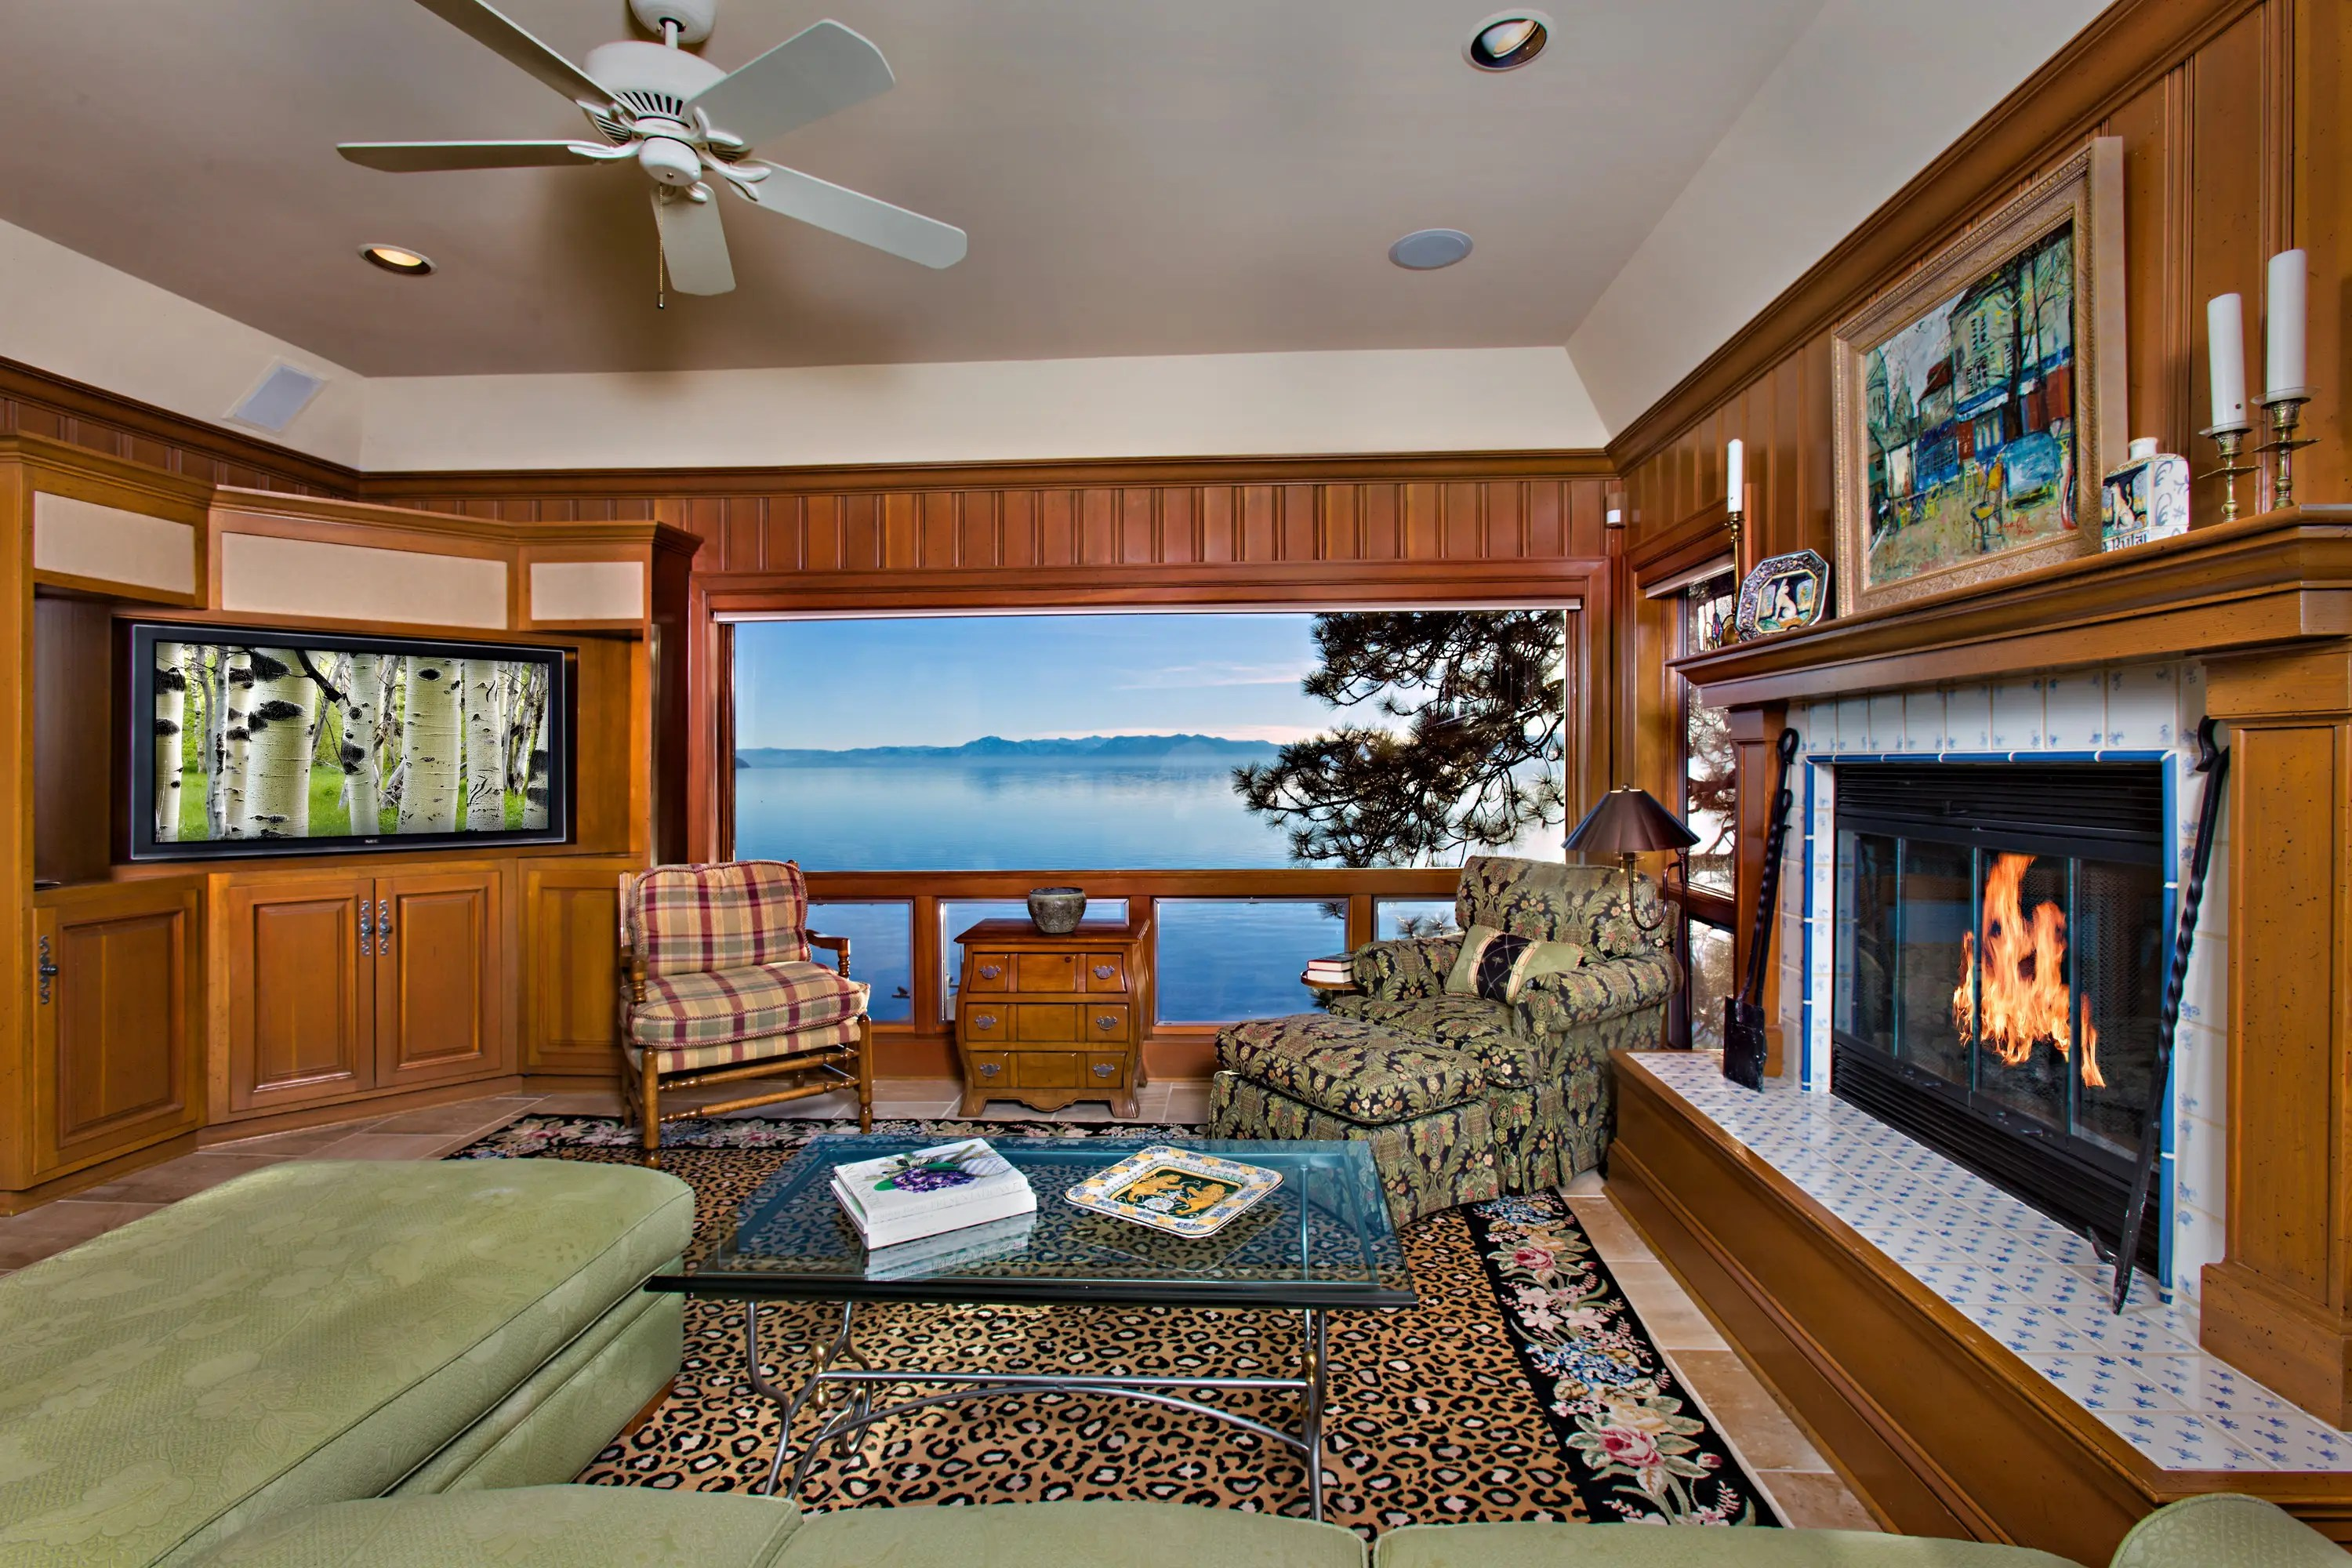 The living room includes wood-paneled walls and an oversized fireplace.